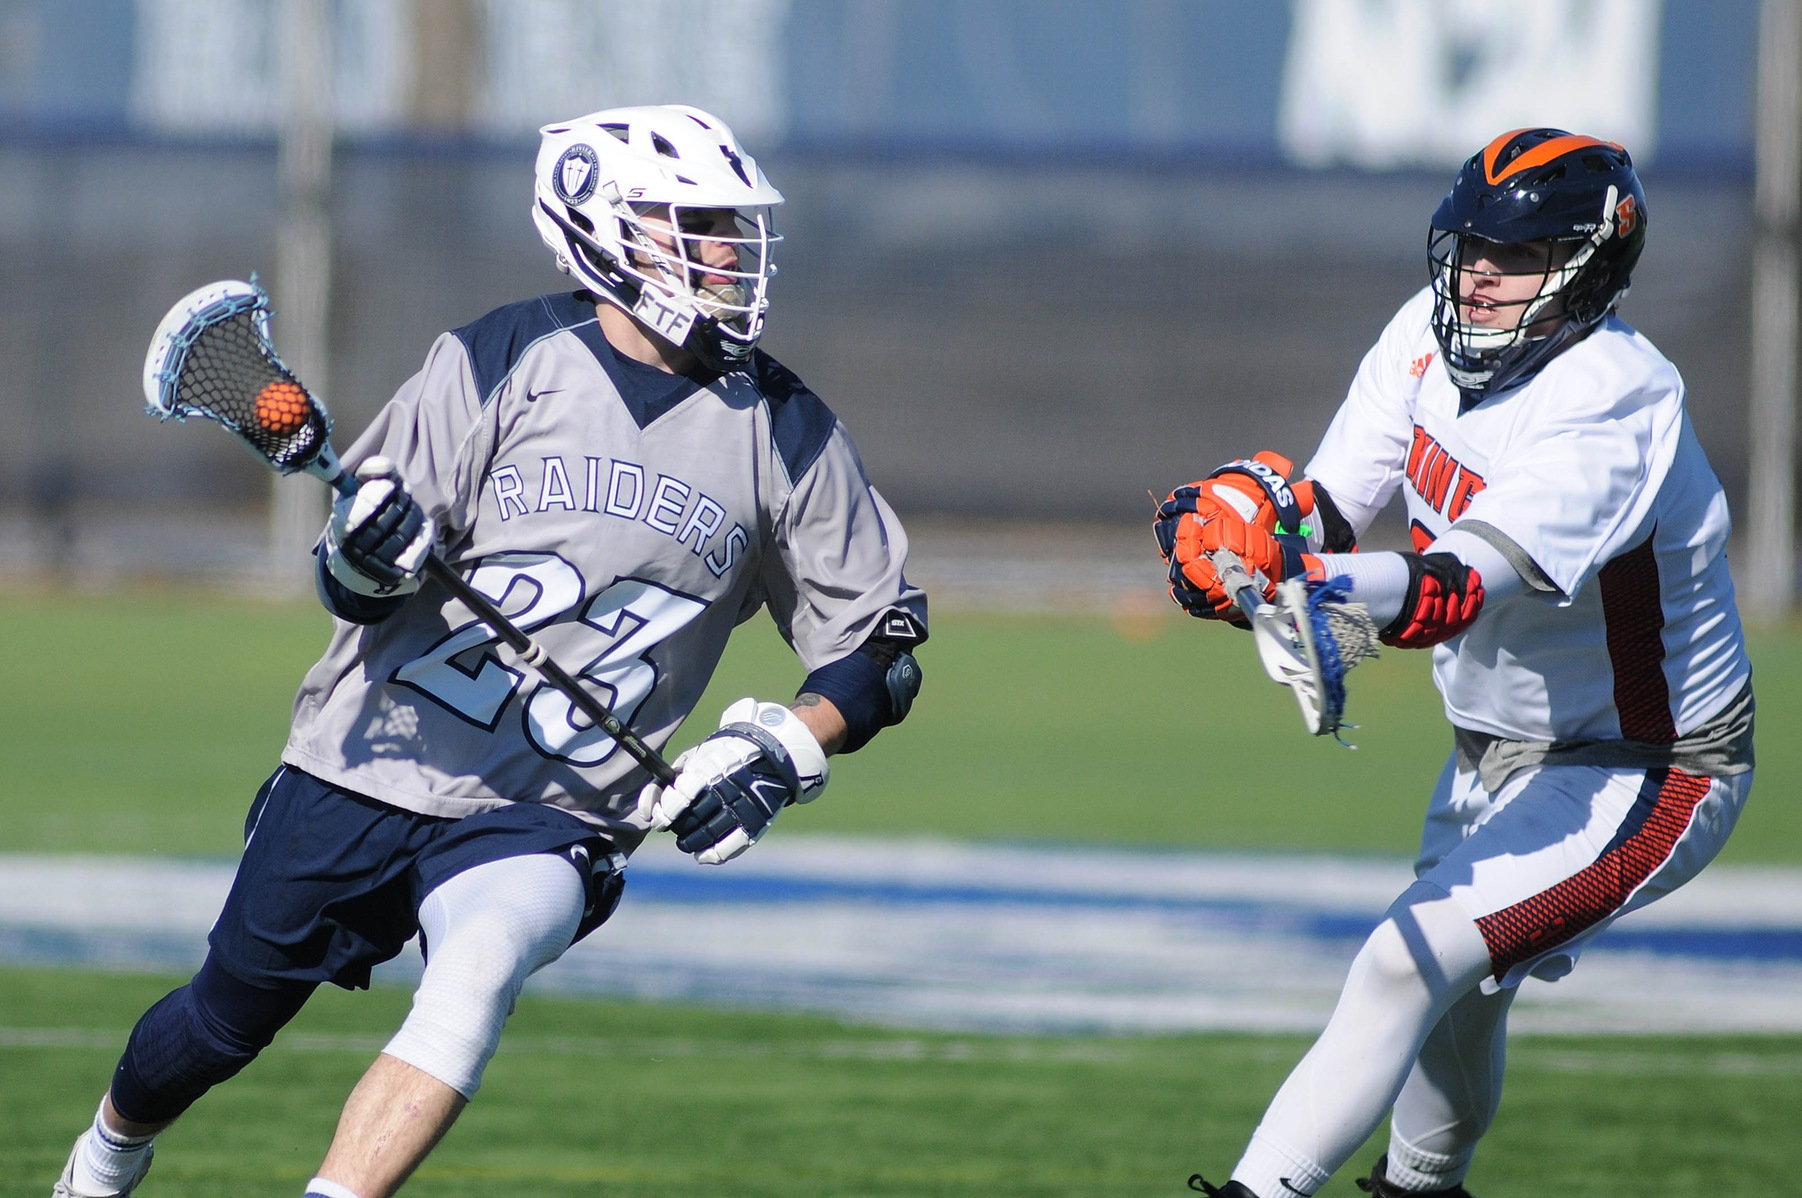 Men's Lacrosse: Raiders suffer conference loss to Lasers, 18-7.